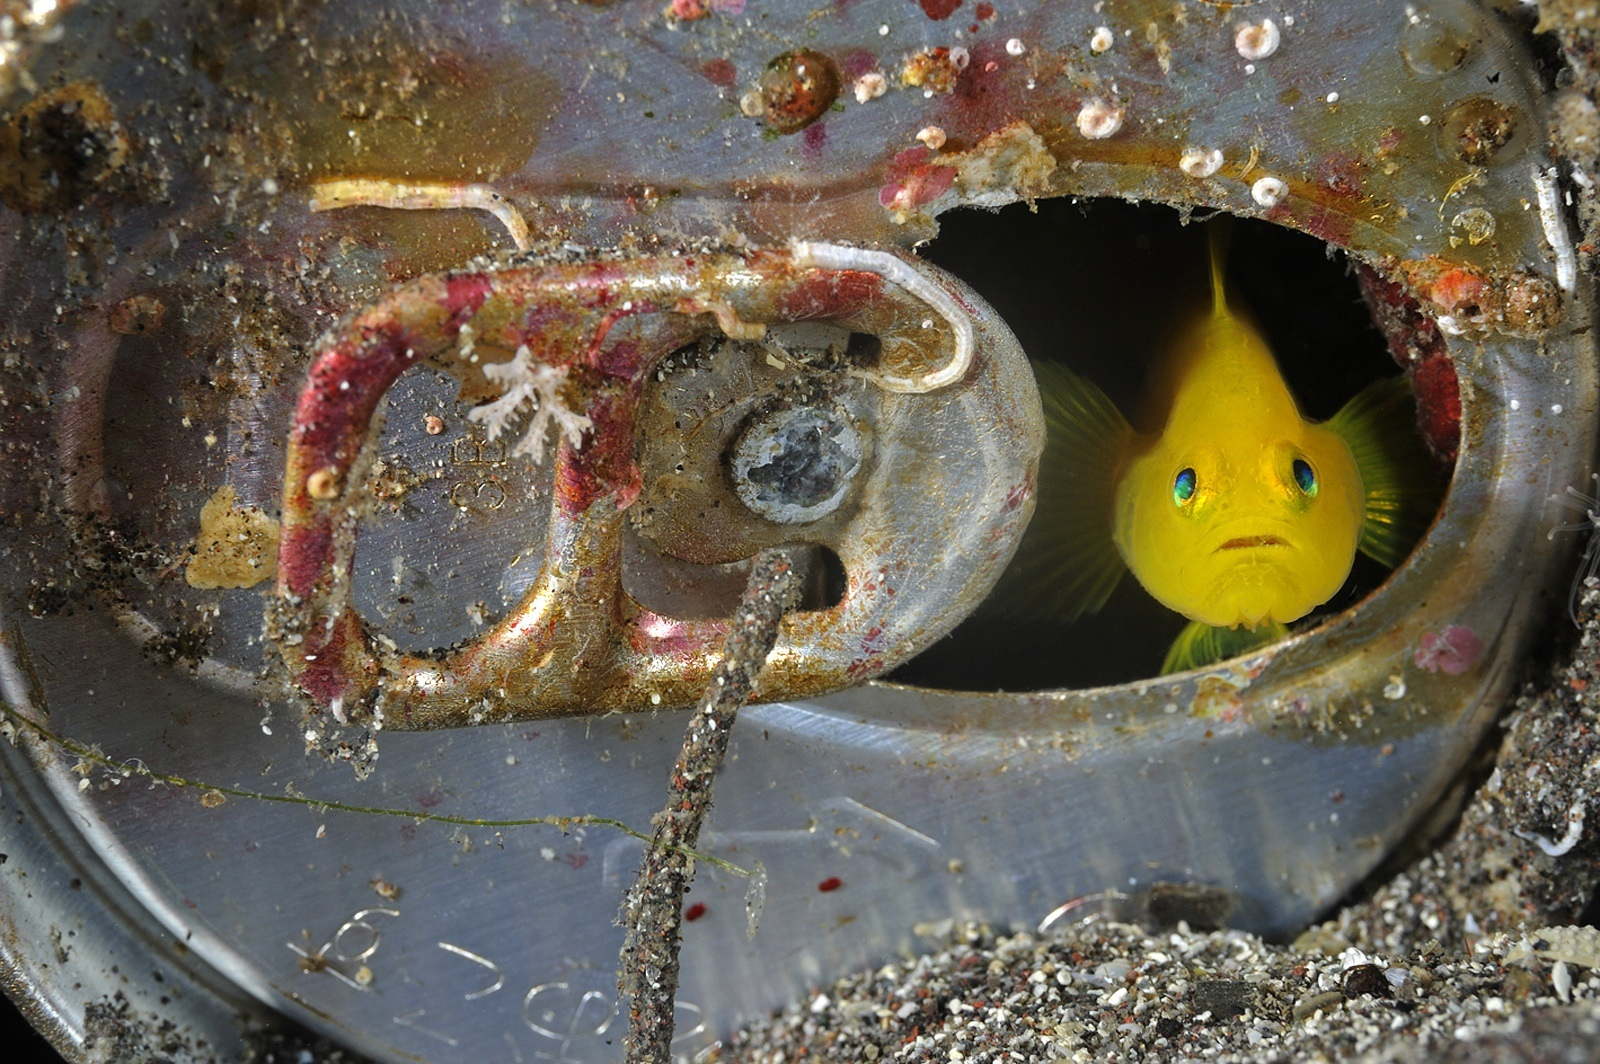 A tiny yellow goby living inside an abandoned can on the seafloor; Suruga Bay, Japan<div class='credit'><strong>Credit:</strong> A tiny yellow goby living inside an abandoned can on the seafloor; Suruga Bay, Japan</div>